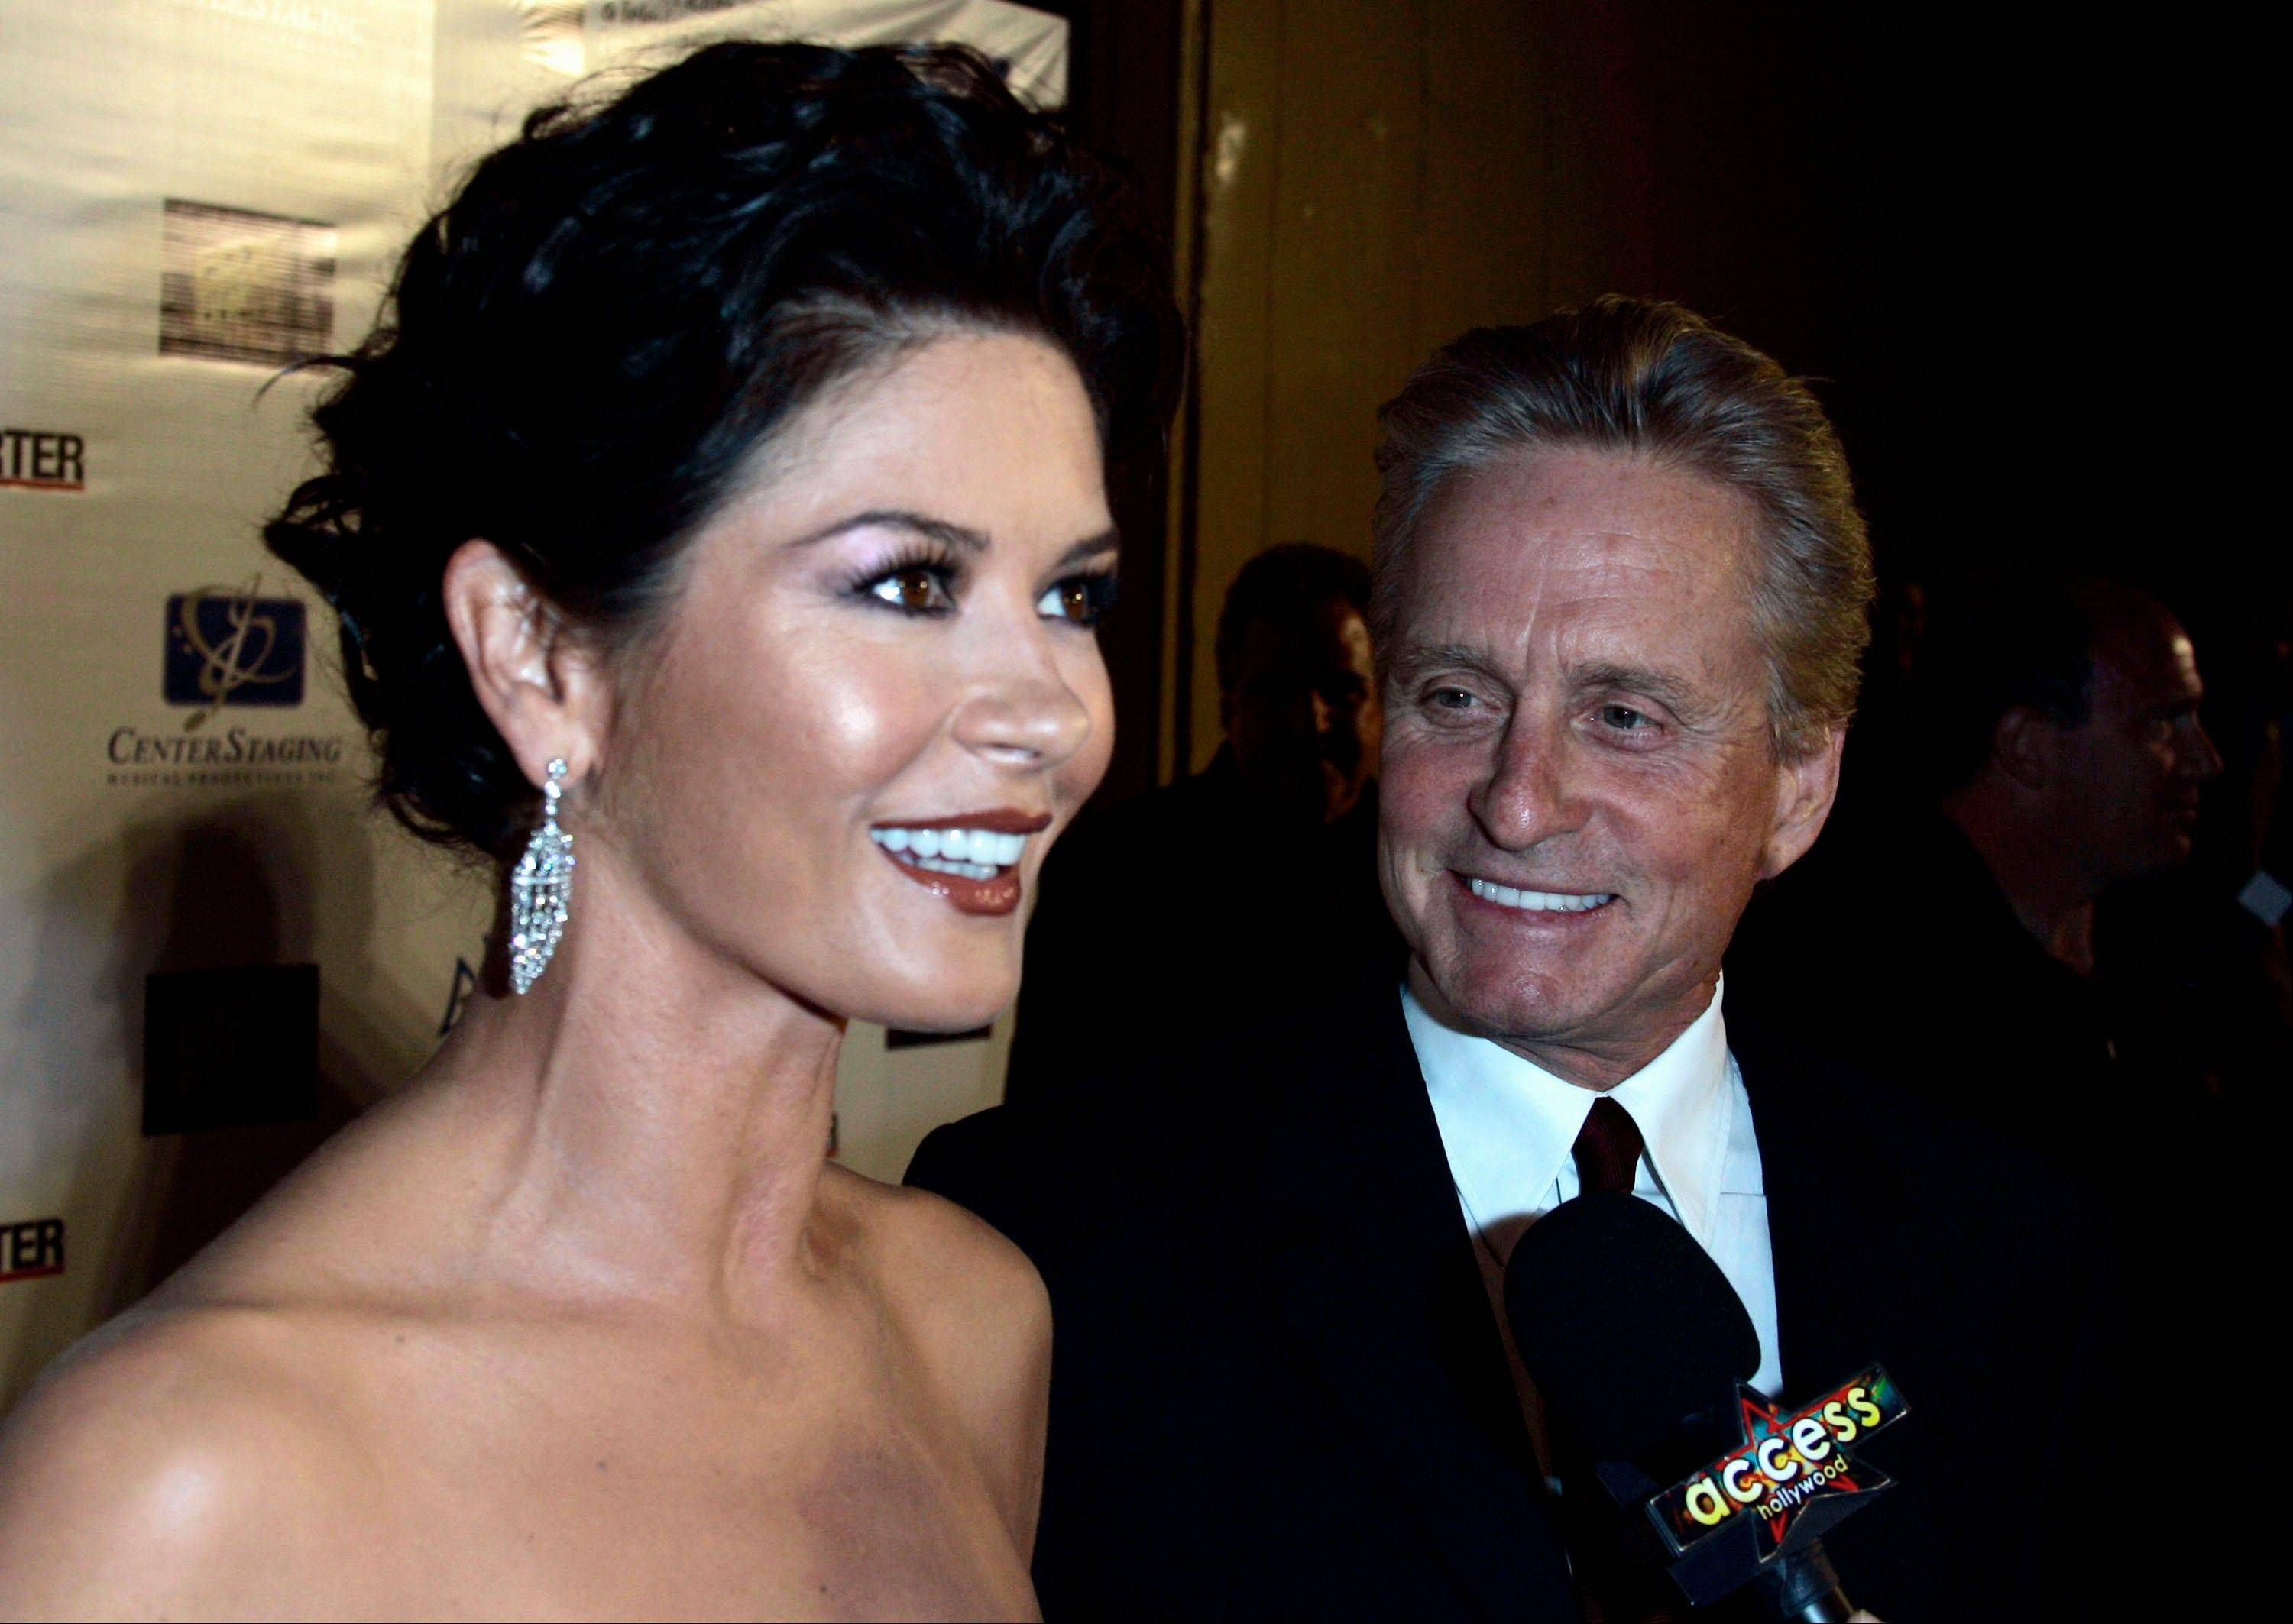 Publicist Cece Yorke, a spokeswoman for Catherine Zeta-Jones, left, says the actress and her husband, Michael Douglas, �are taking some time apart to evaluate and work on their marriage.�